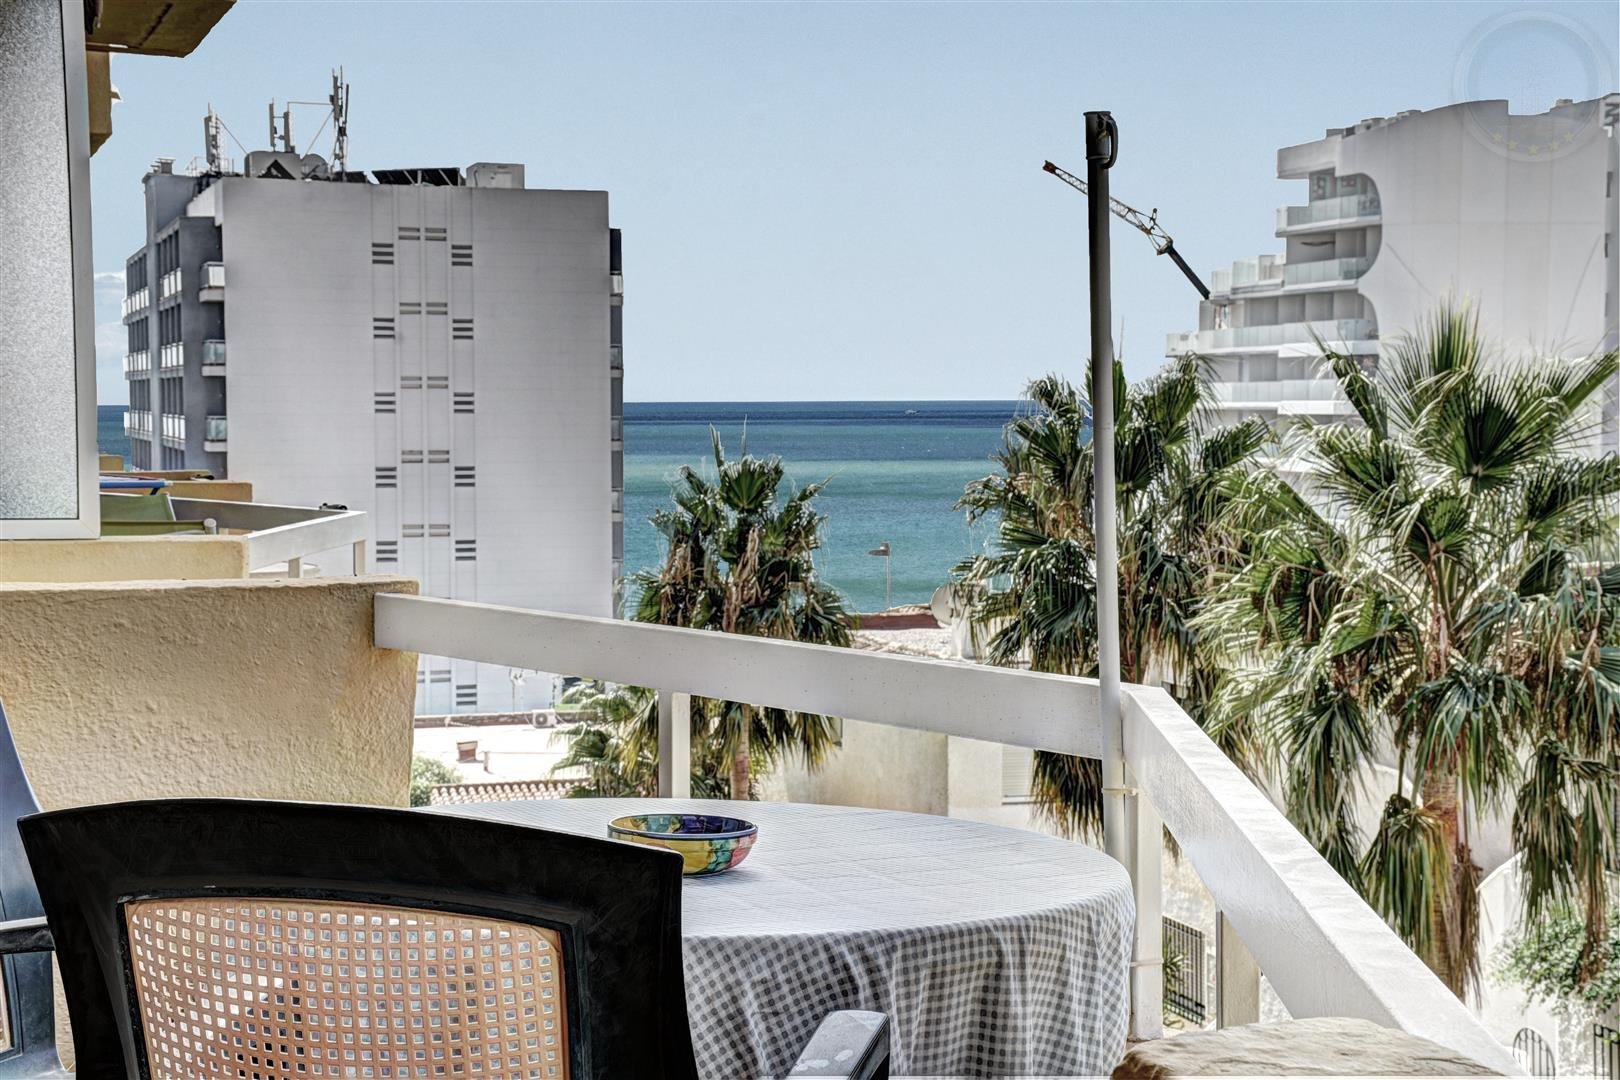 Photo of Orfeo Azul Property for Sale in Benalmadena Costa